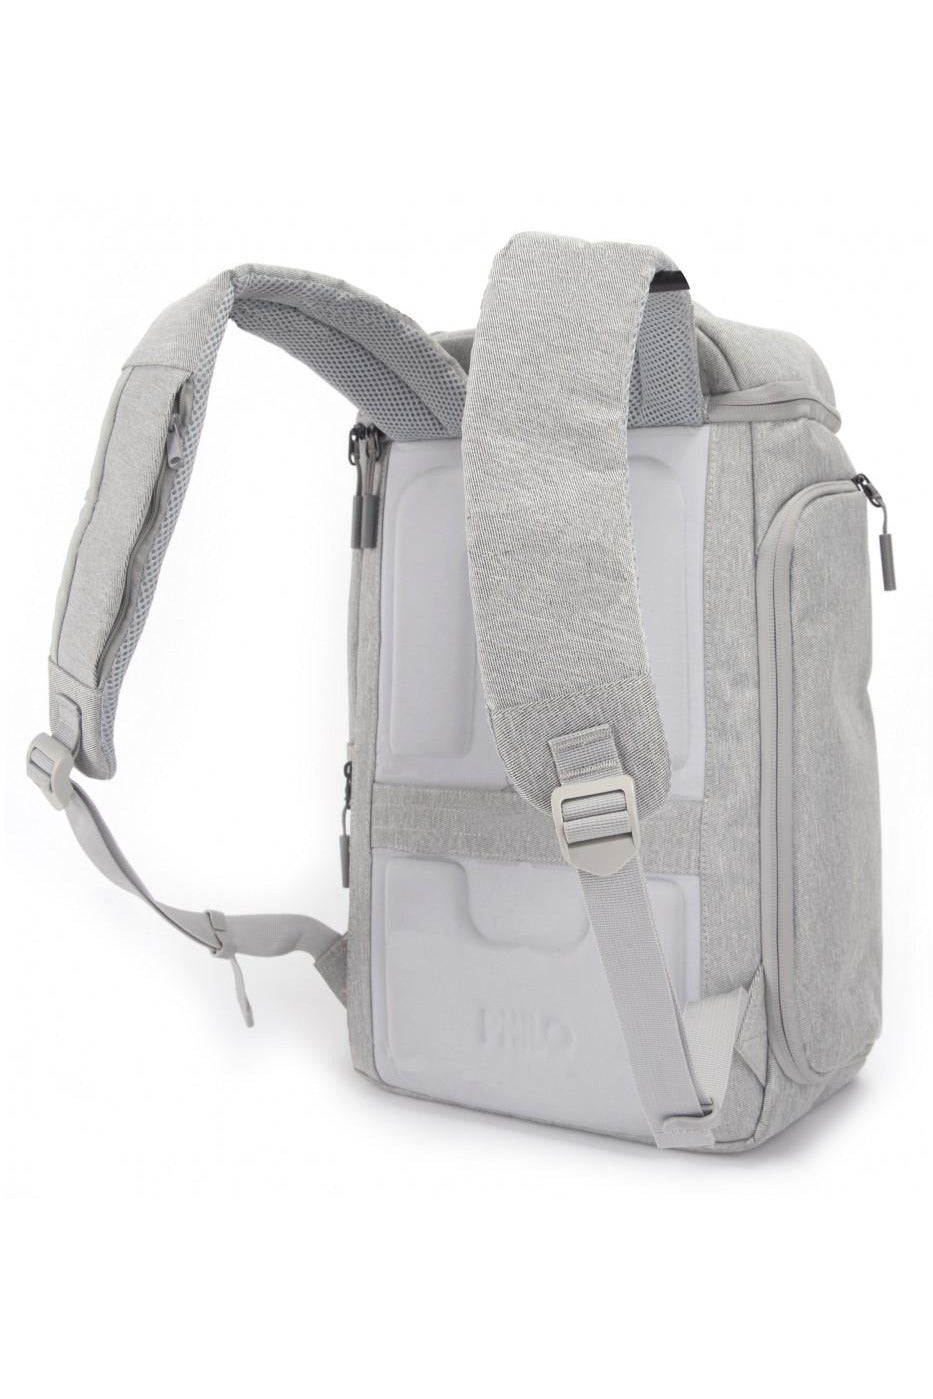 Philo Smart Backpack for 15-InchLaptop, Integrated USB Charging Port - Light Grey